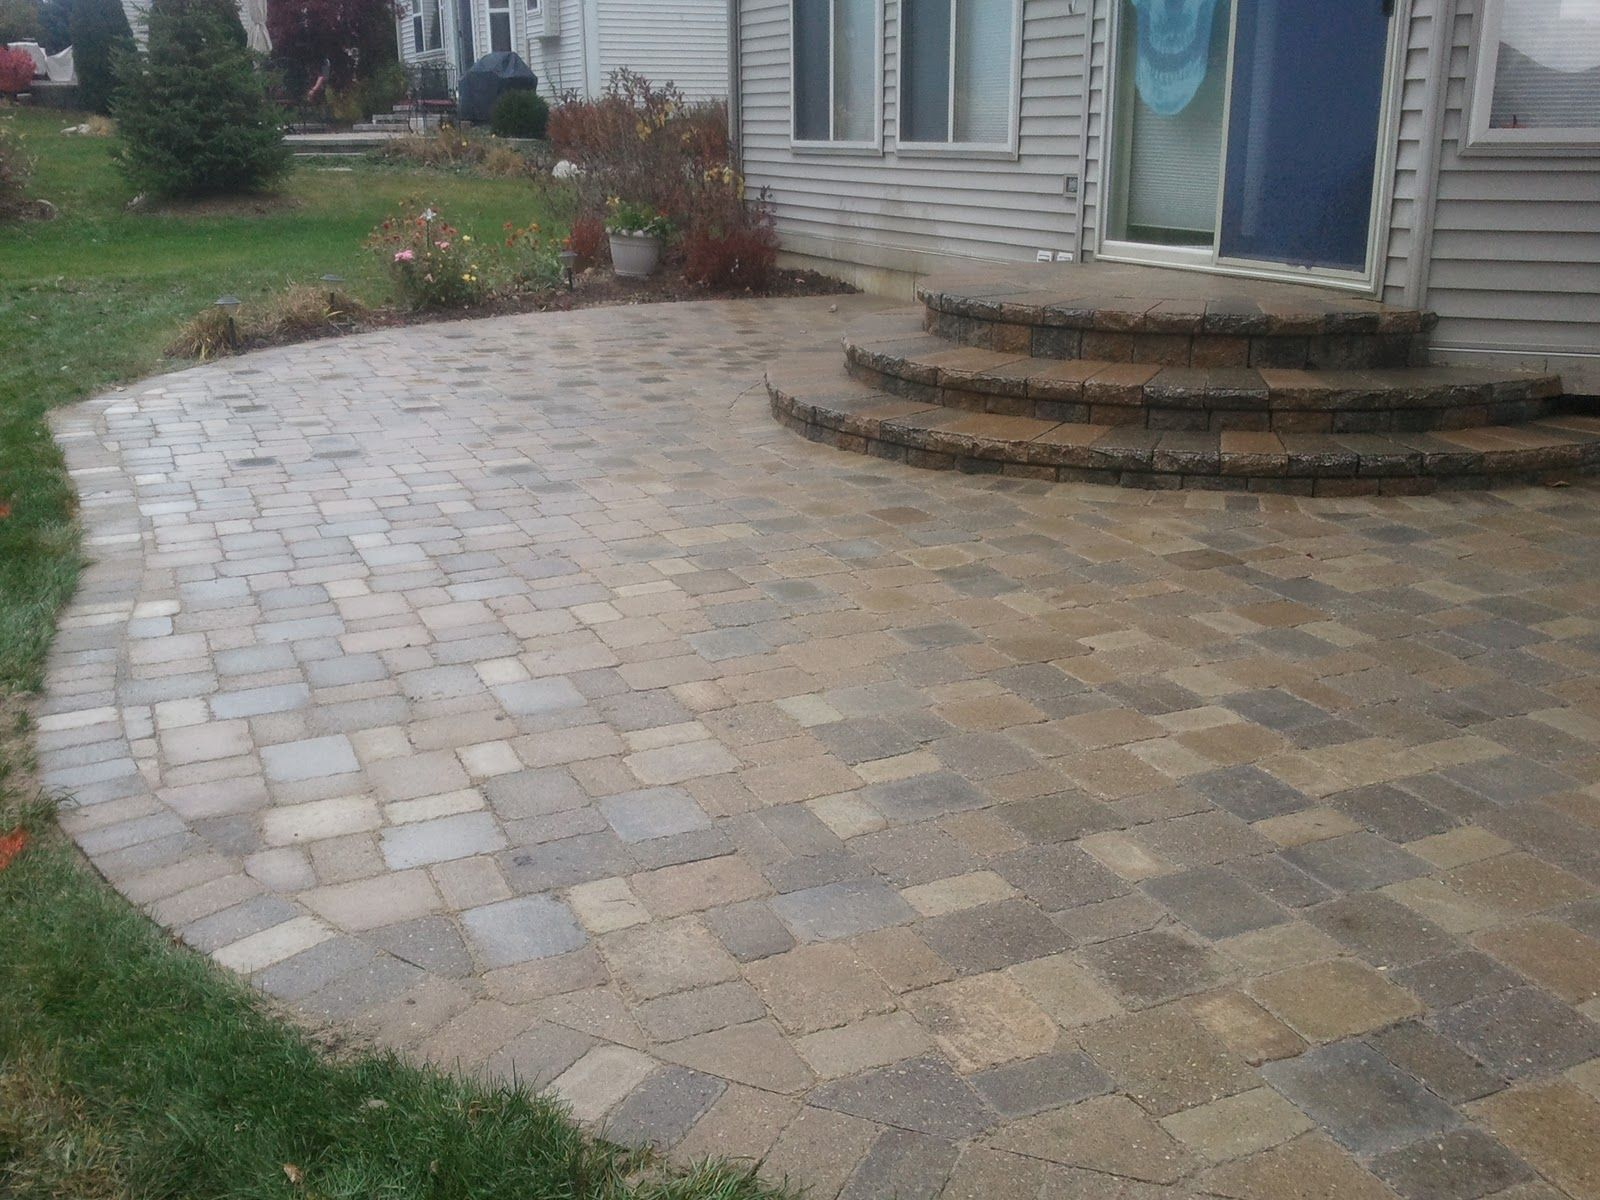 best stone patio ideas - Brick Stone Patio Designs